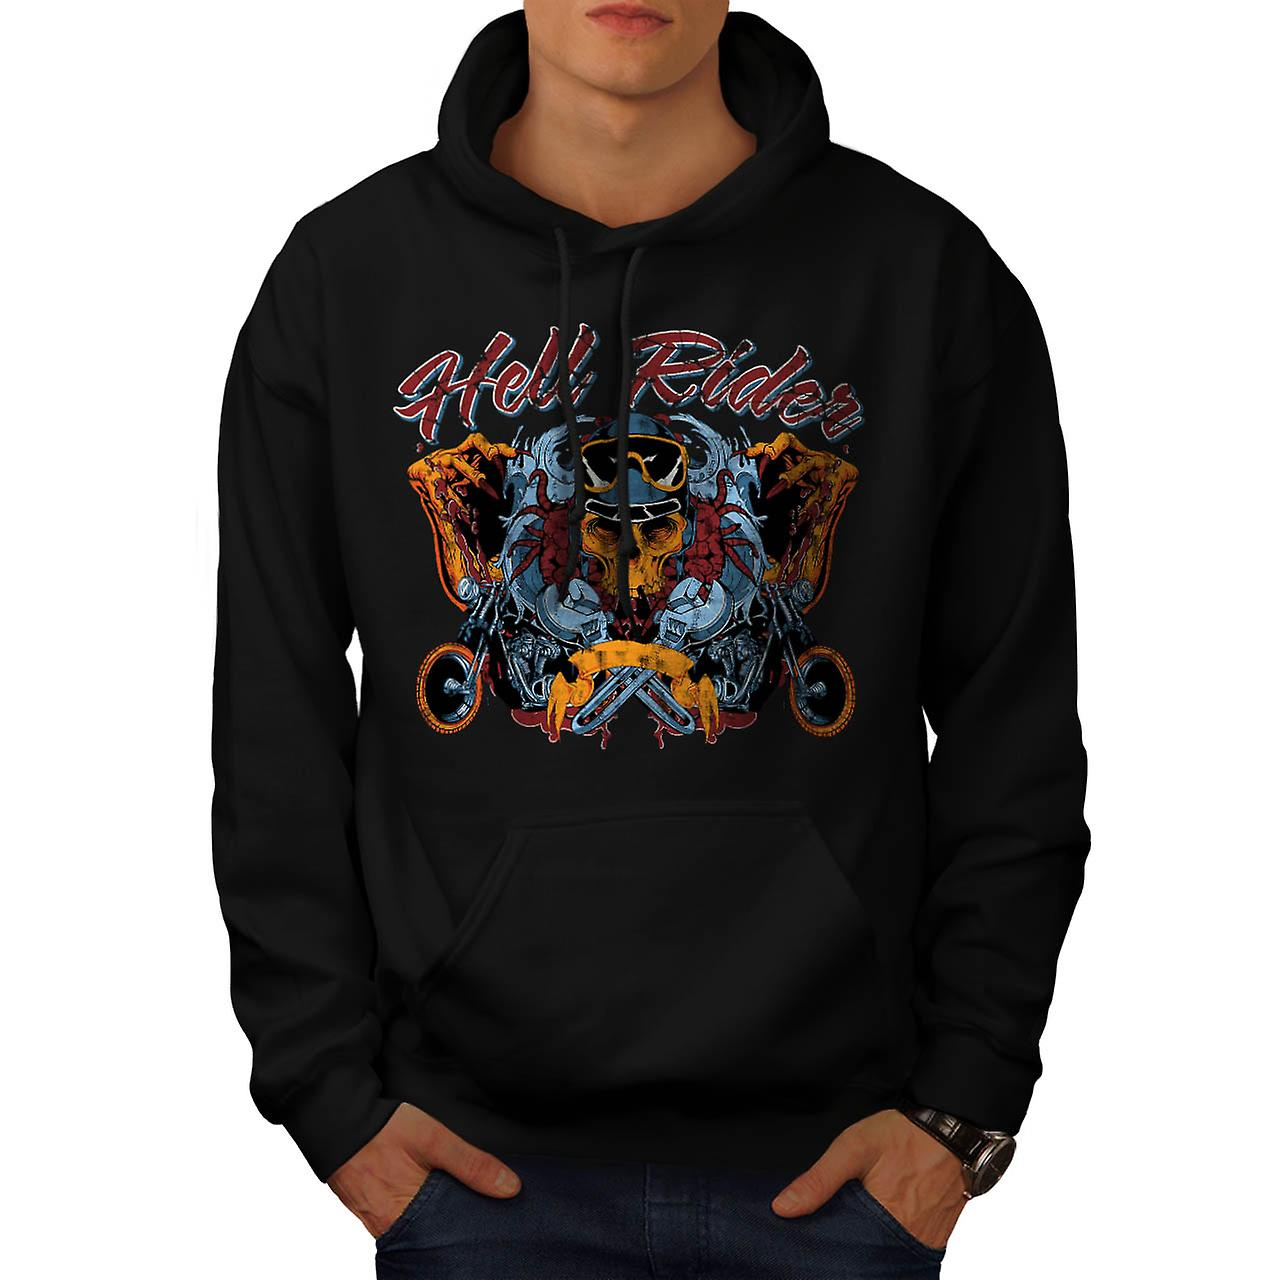 Hell Rider Chopper Biker Life Men Black Hoodie | Wellcoda